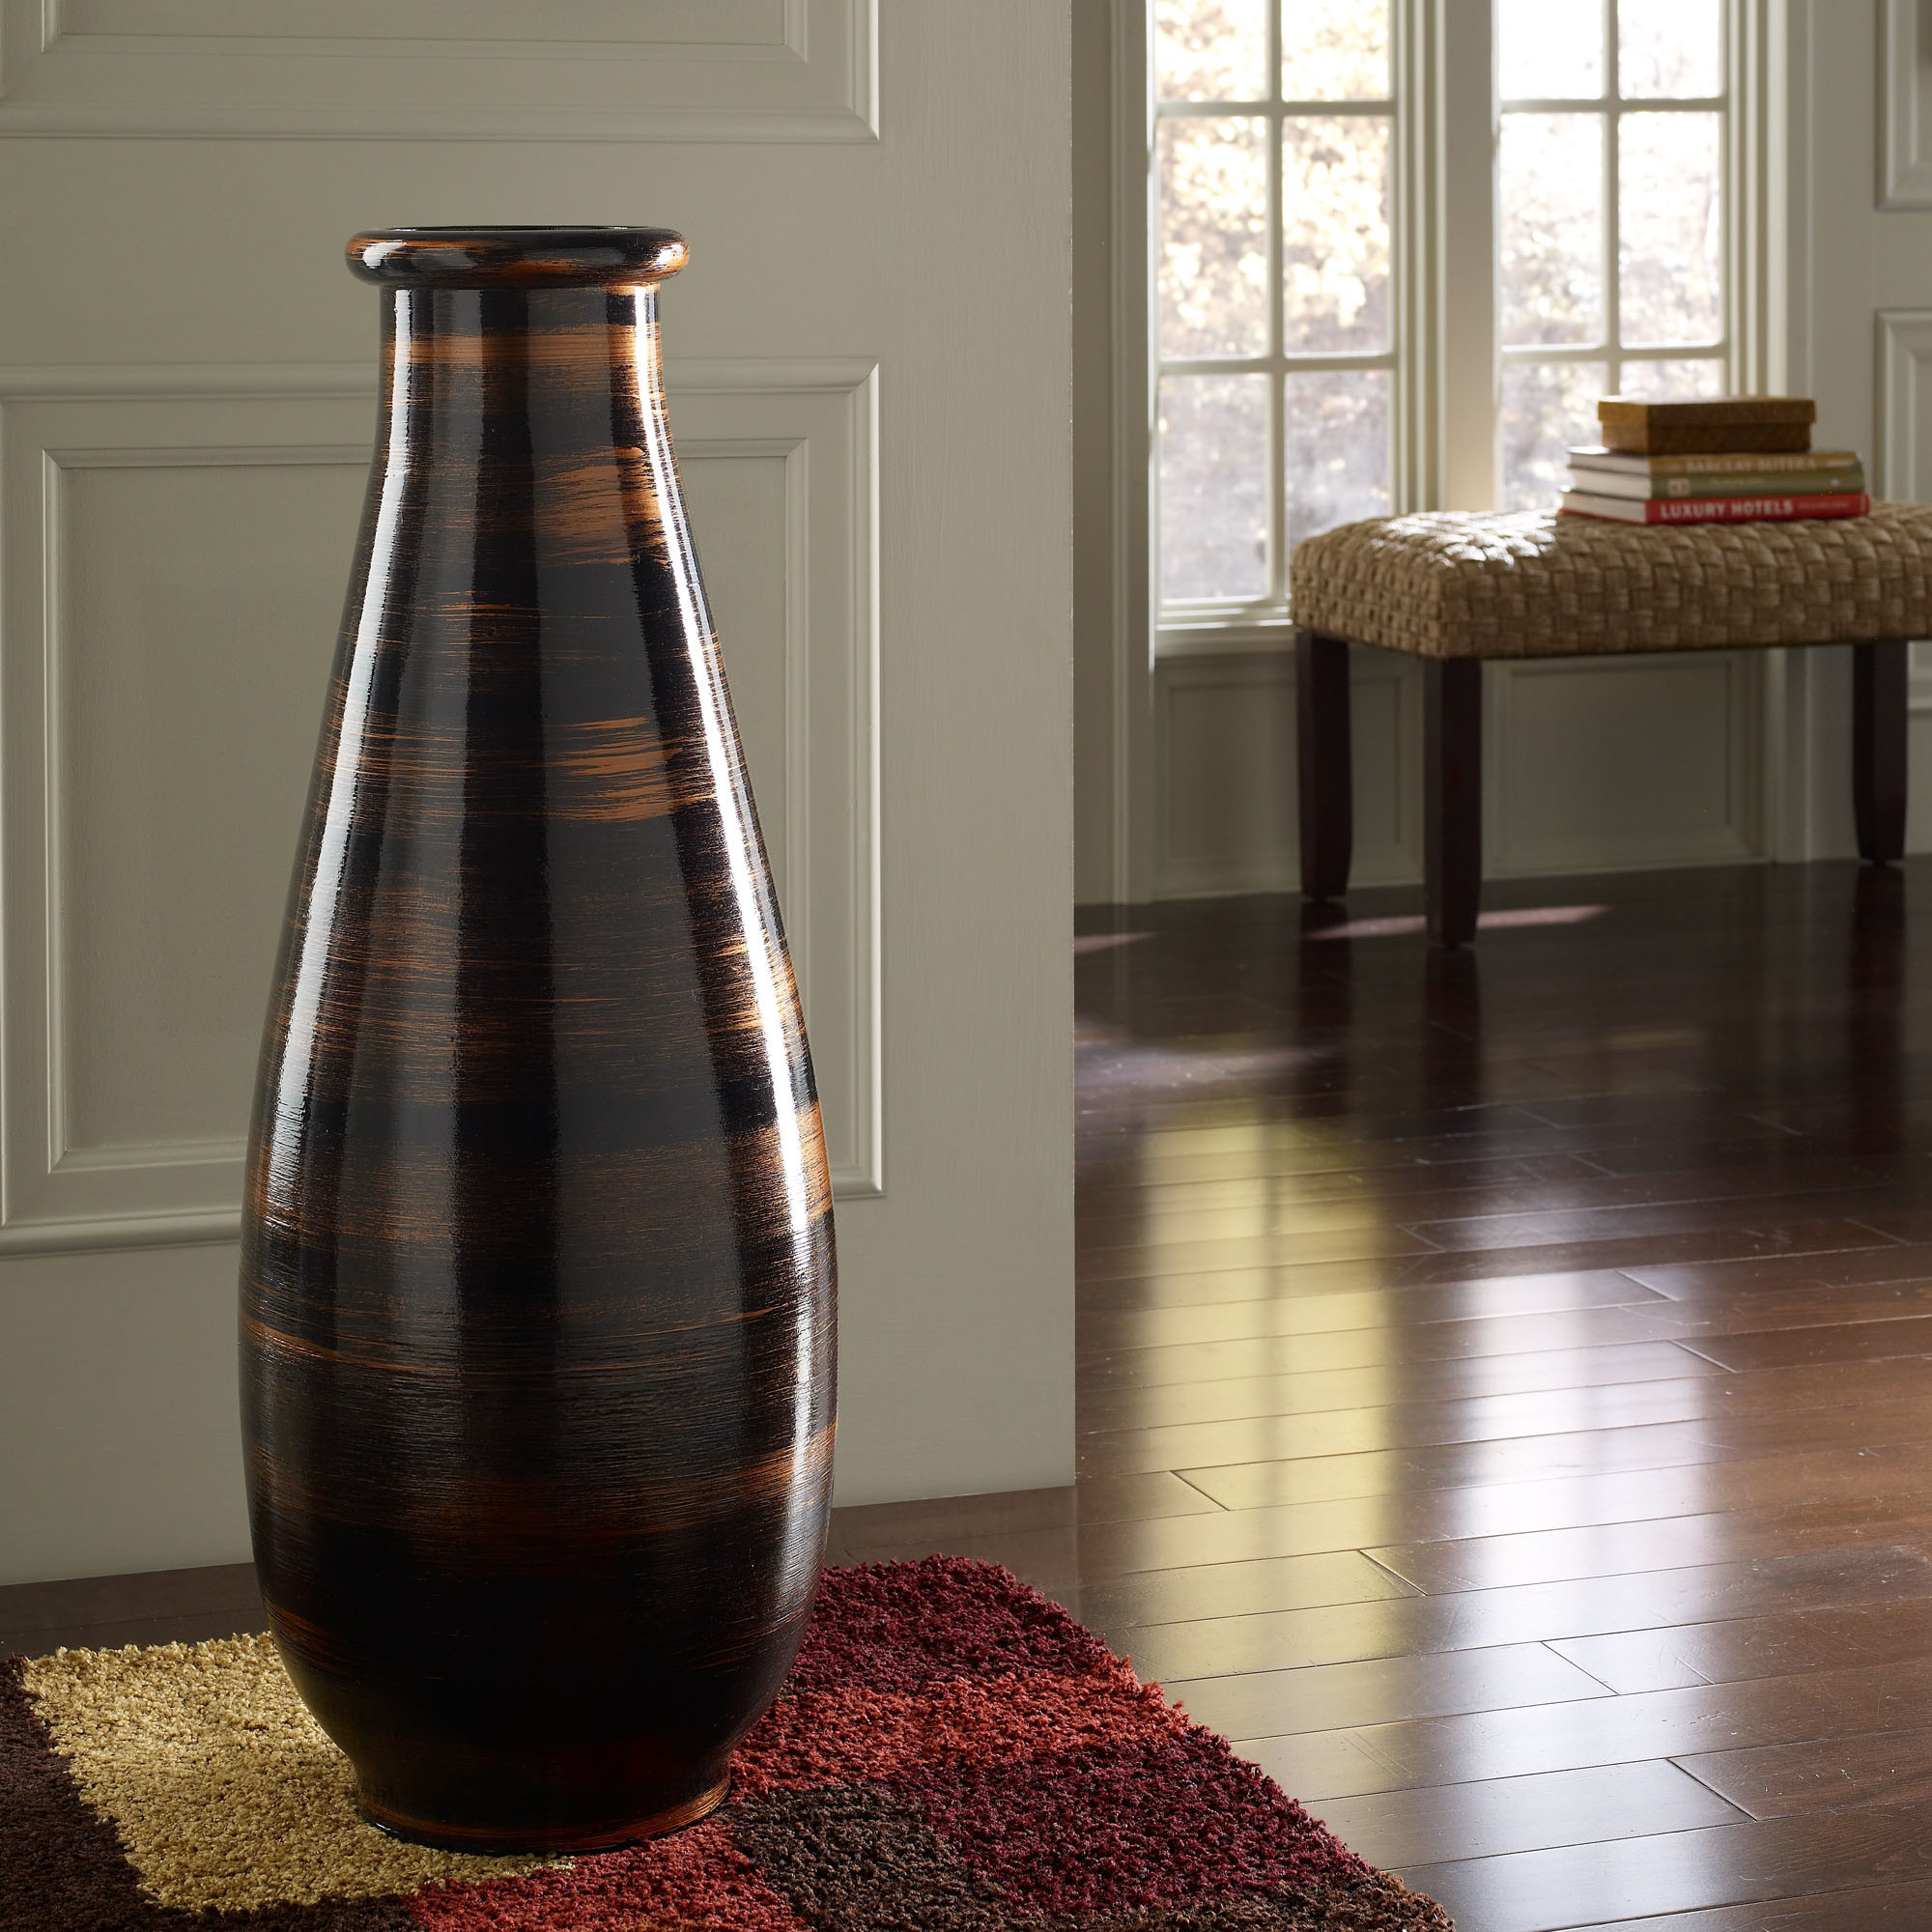 Furniture black floor vase floor vases home decor floor vase aqua floor vase floor vase floor standing vase ikea reviewsmspy